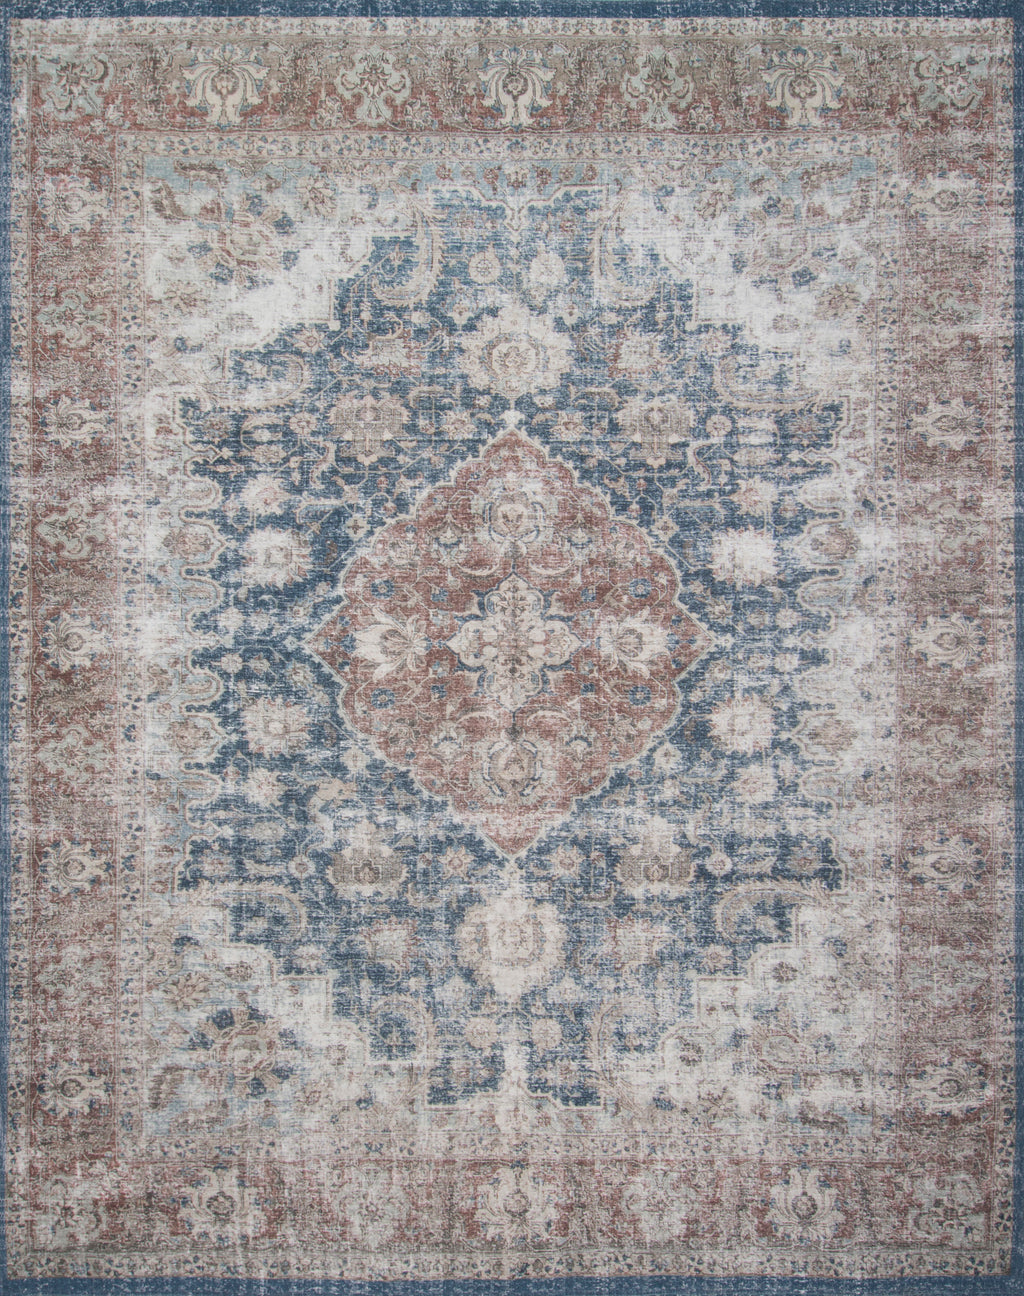 LUCCA Collection Wool/Viscose Rug  in  DENIM / TERRACOTTA Blue Accent Power-Loomed Wool/Viscose